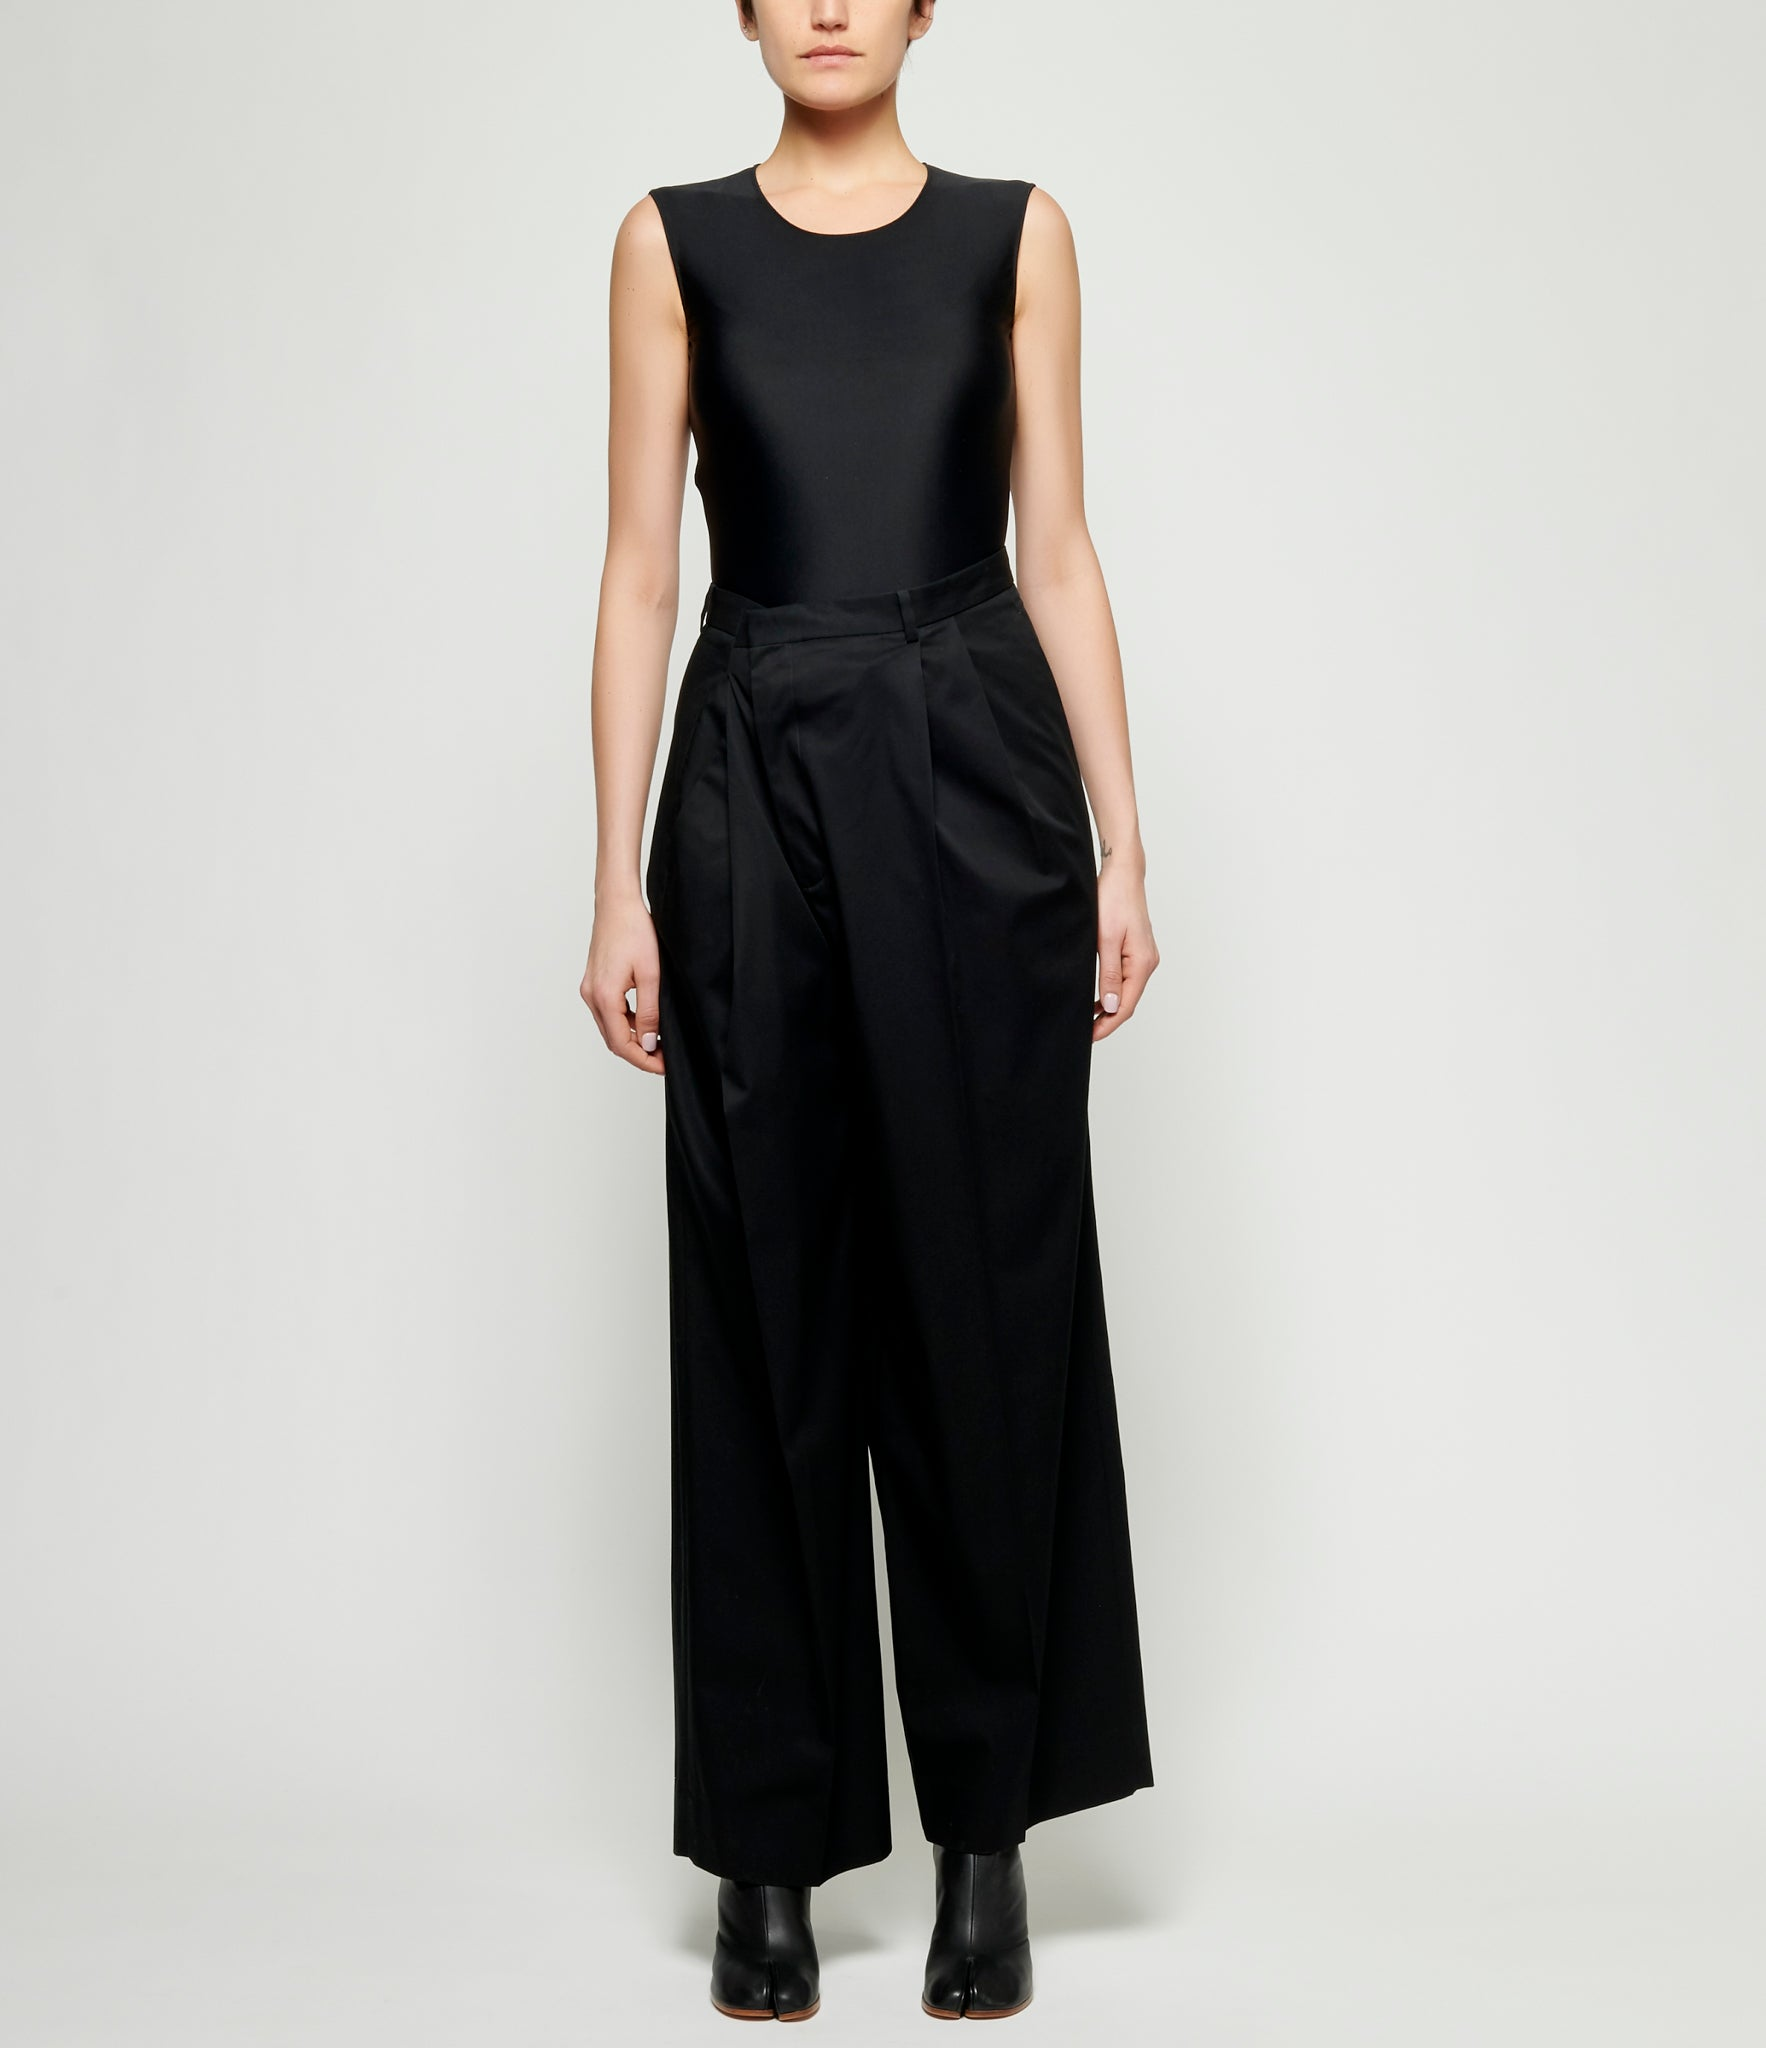 Maison Margiela Superlight Wrap Pants